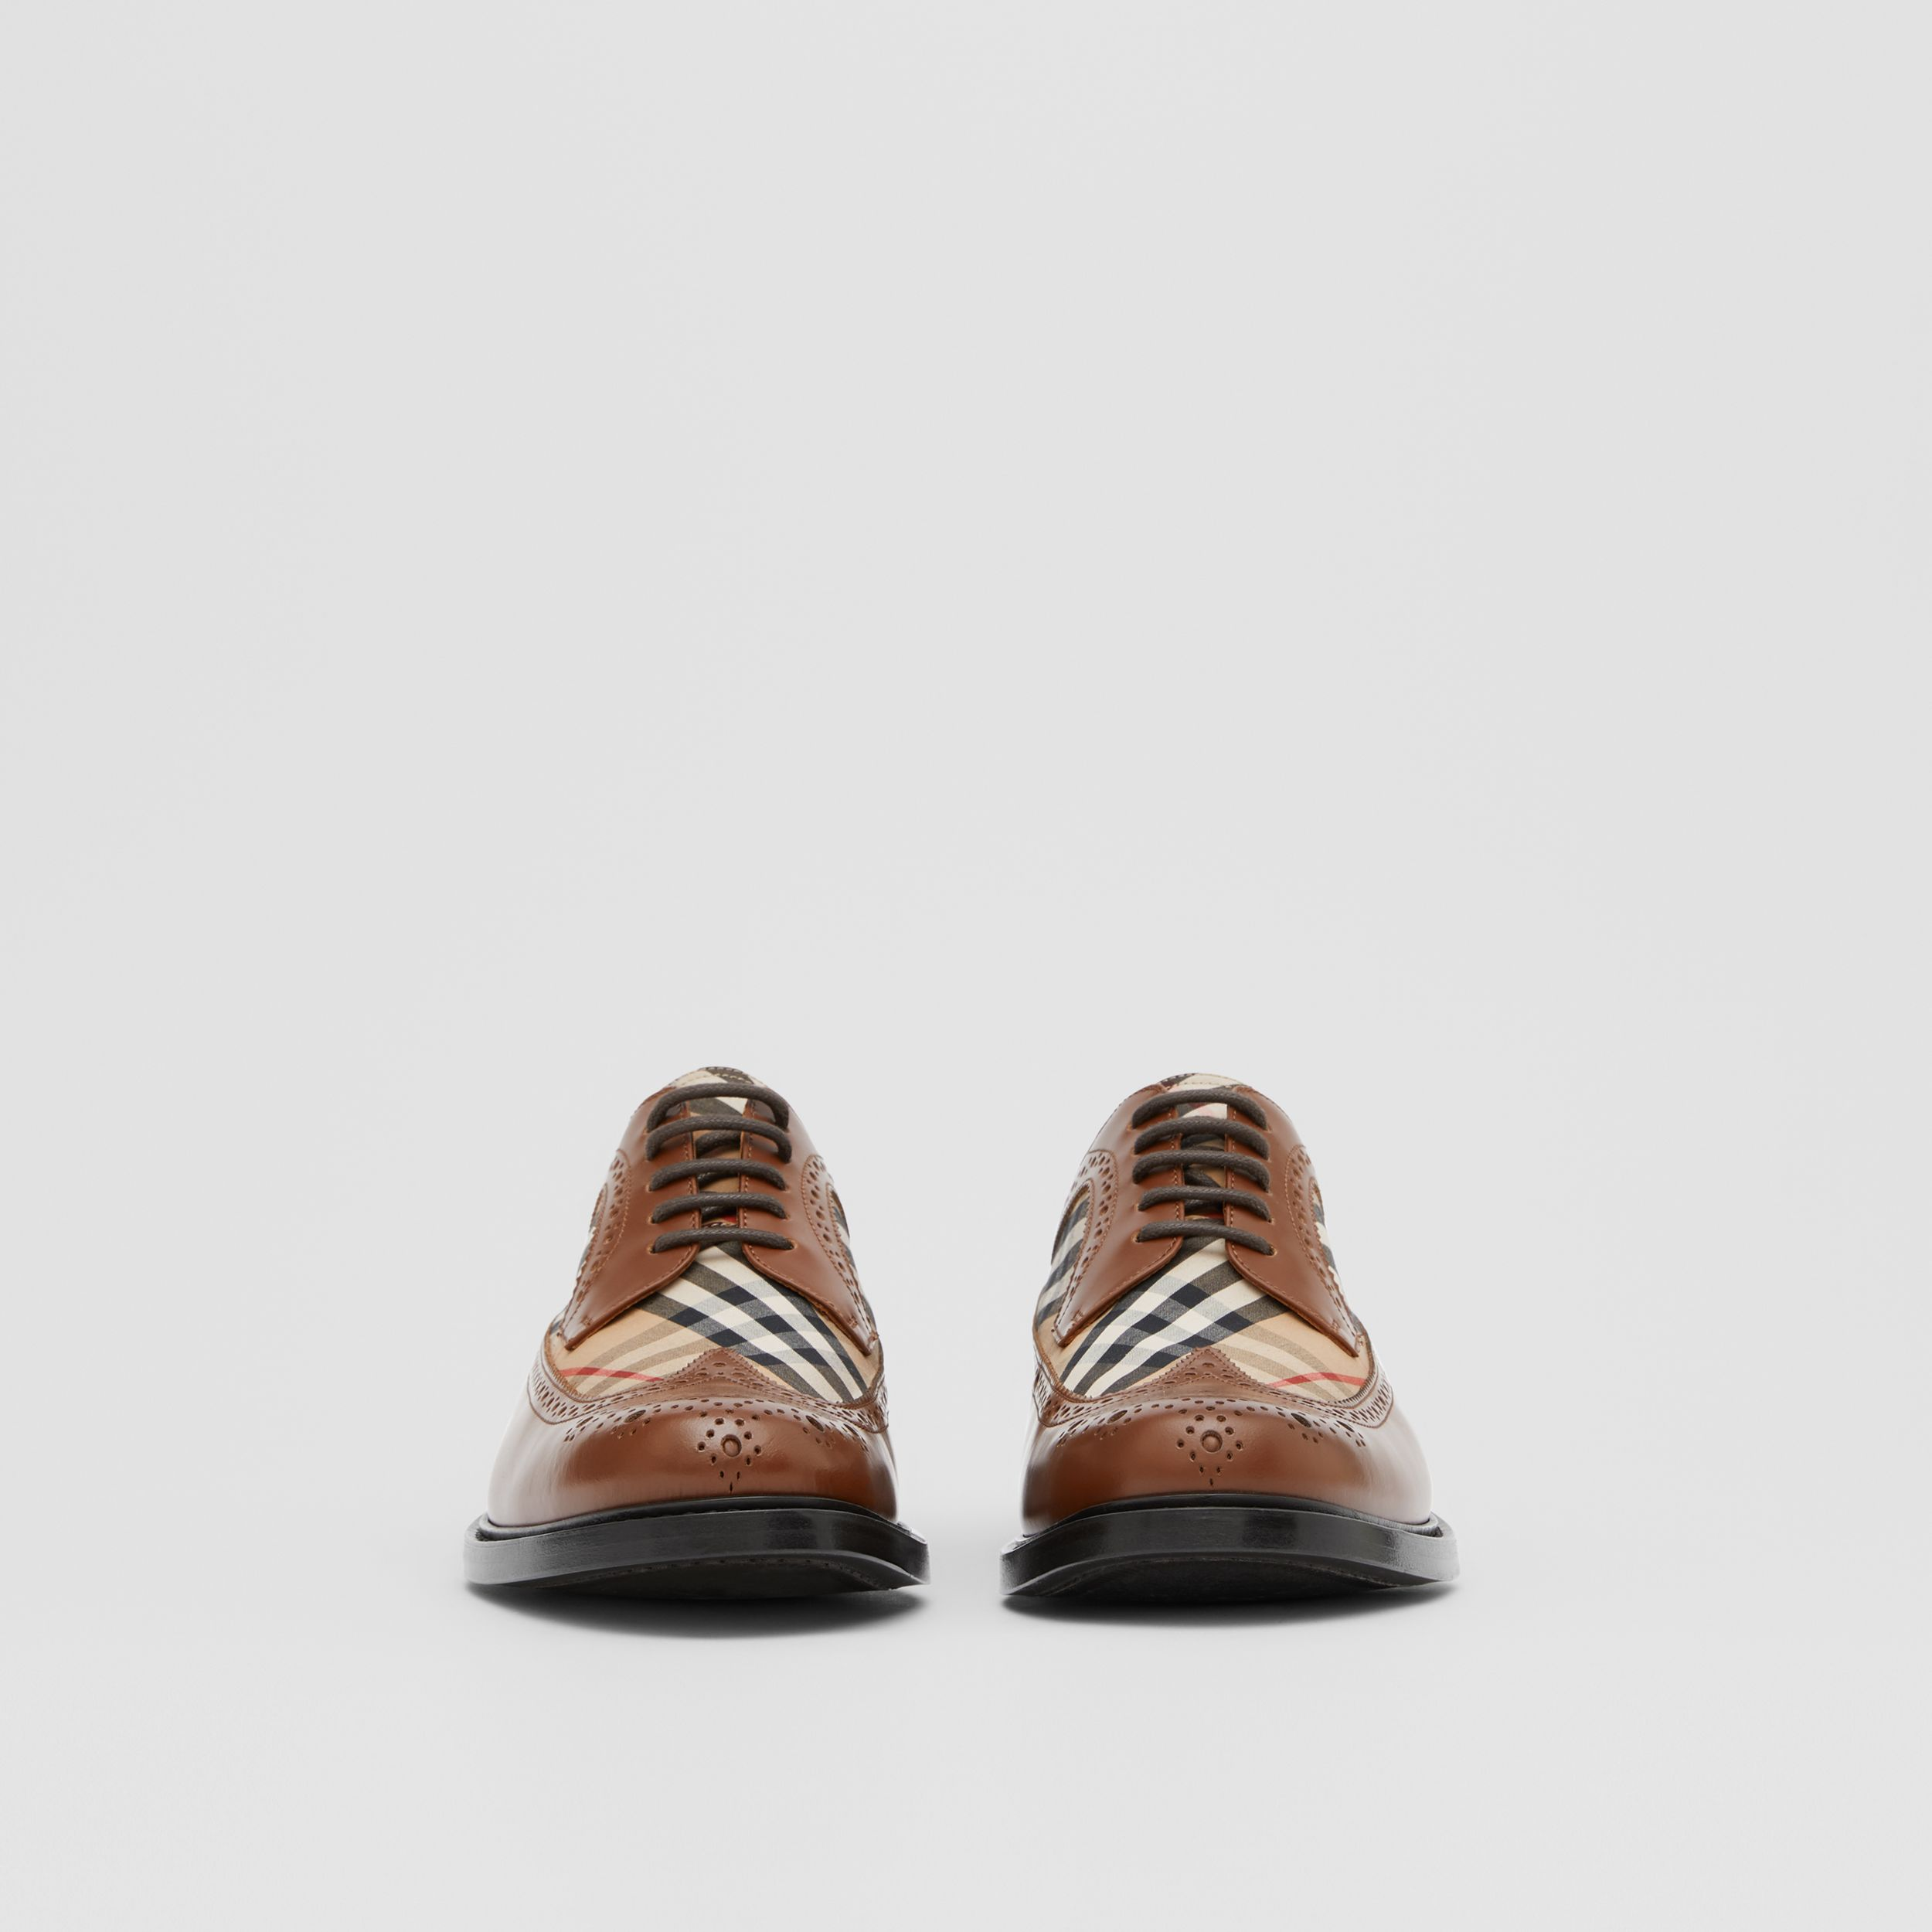 Brogue Detail Leather and Vintage Check Derby Shoes in Tan/archive Beige - Men | Burberry Hong Kong S.A.R. - 4